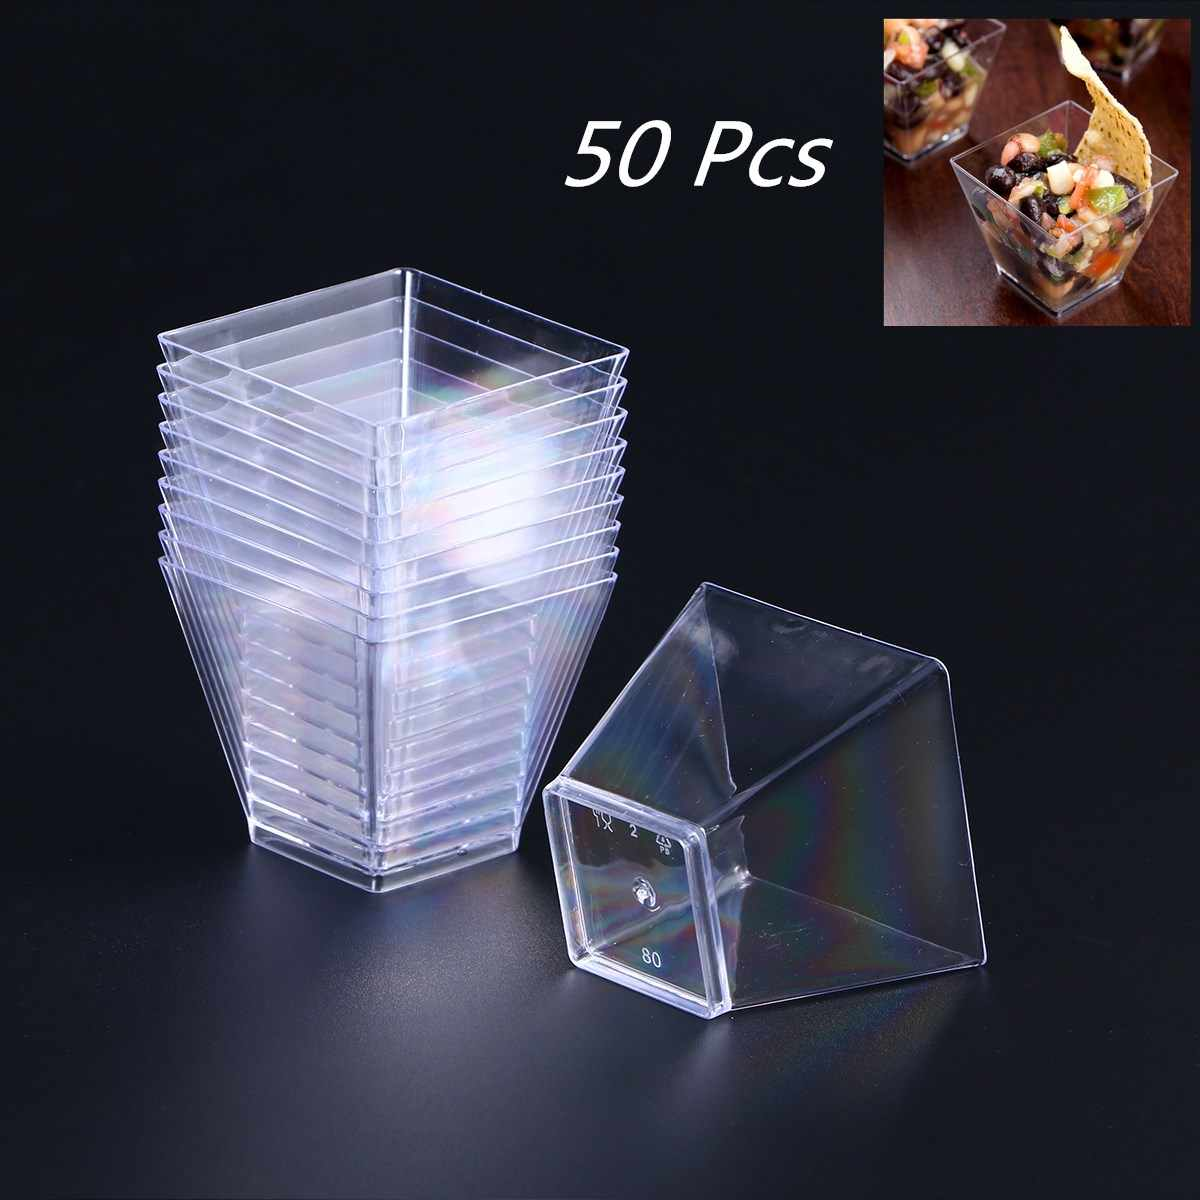 50PCS 60ml Disposable Plastic Portion Cups Clear Portion Transparent Trapezoidal Container for Jelly Yogurt Mousses Dessert